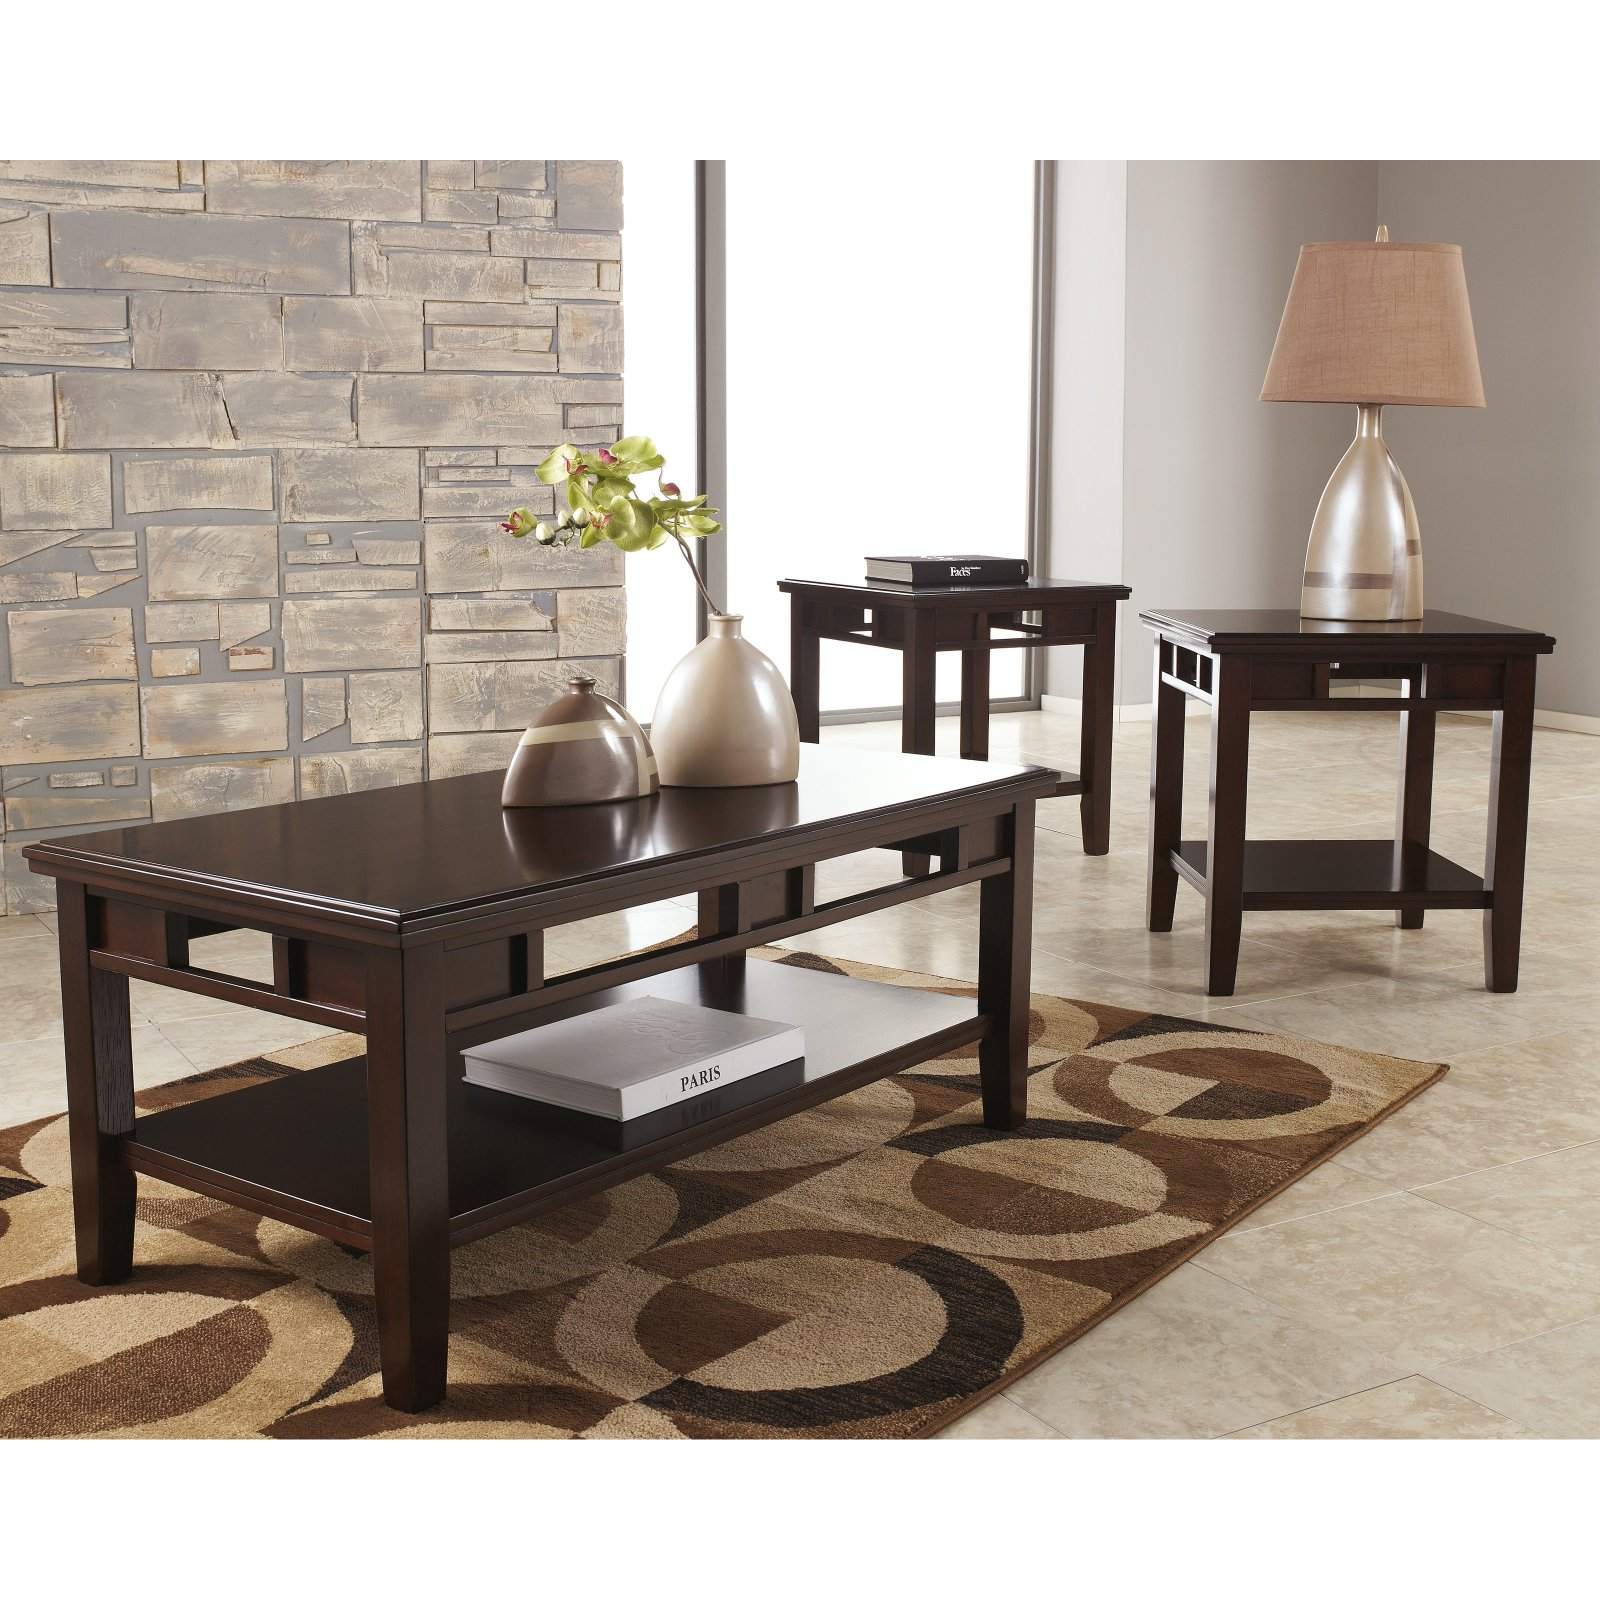 Signature Design by Ashley Logan 3 Piece Coffee Table Set